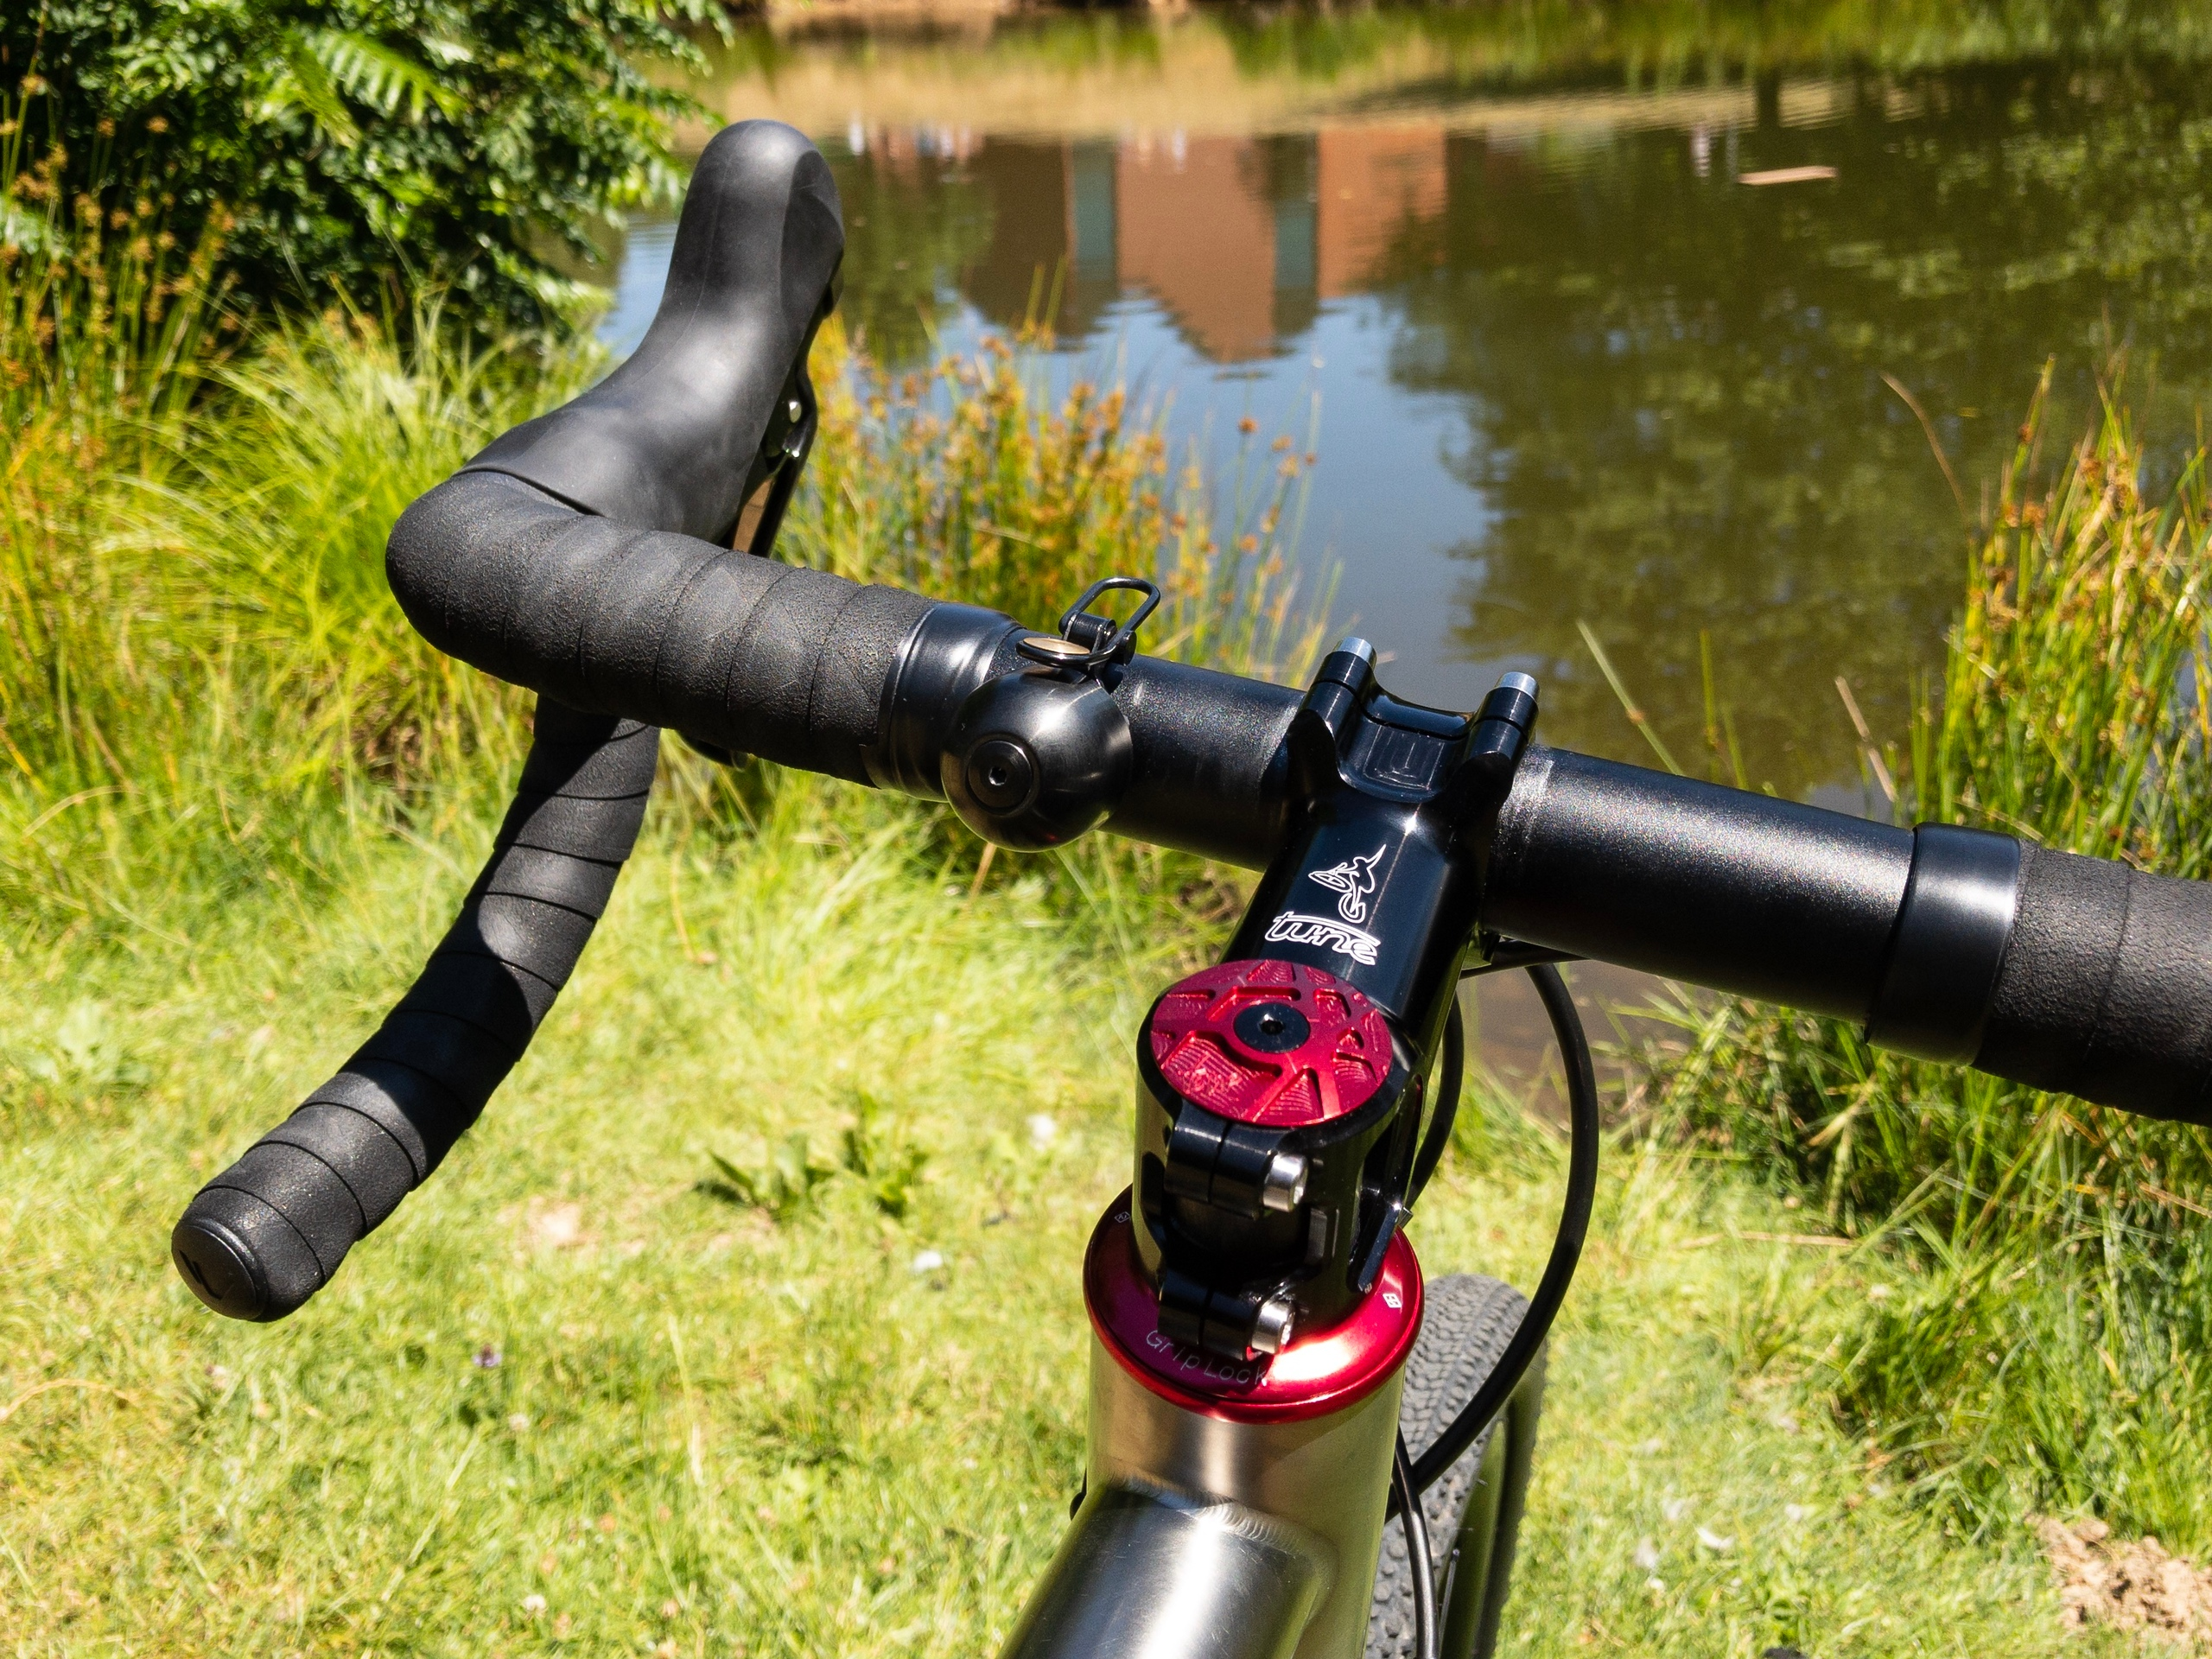 Super bling Tune Geiles Teil 4.0 and a red CNC-machined Tune stem cap